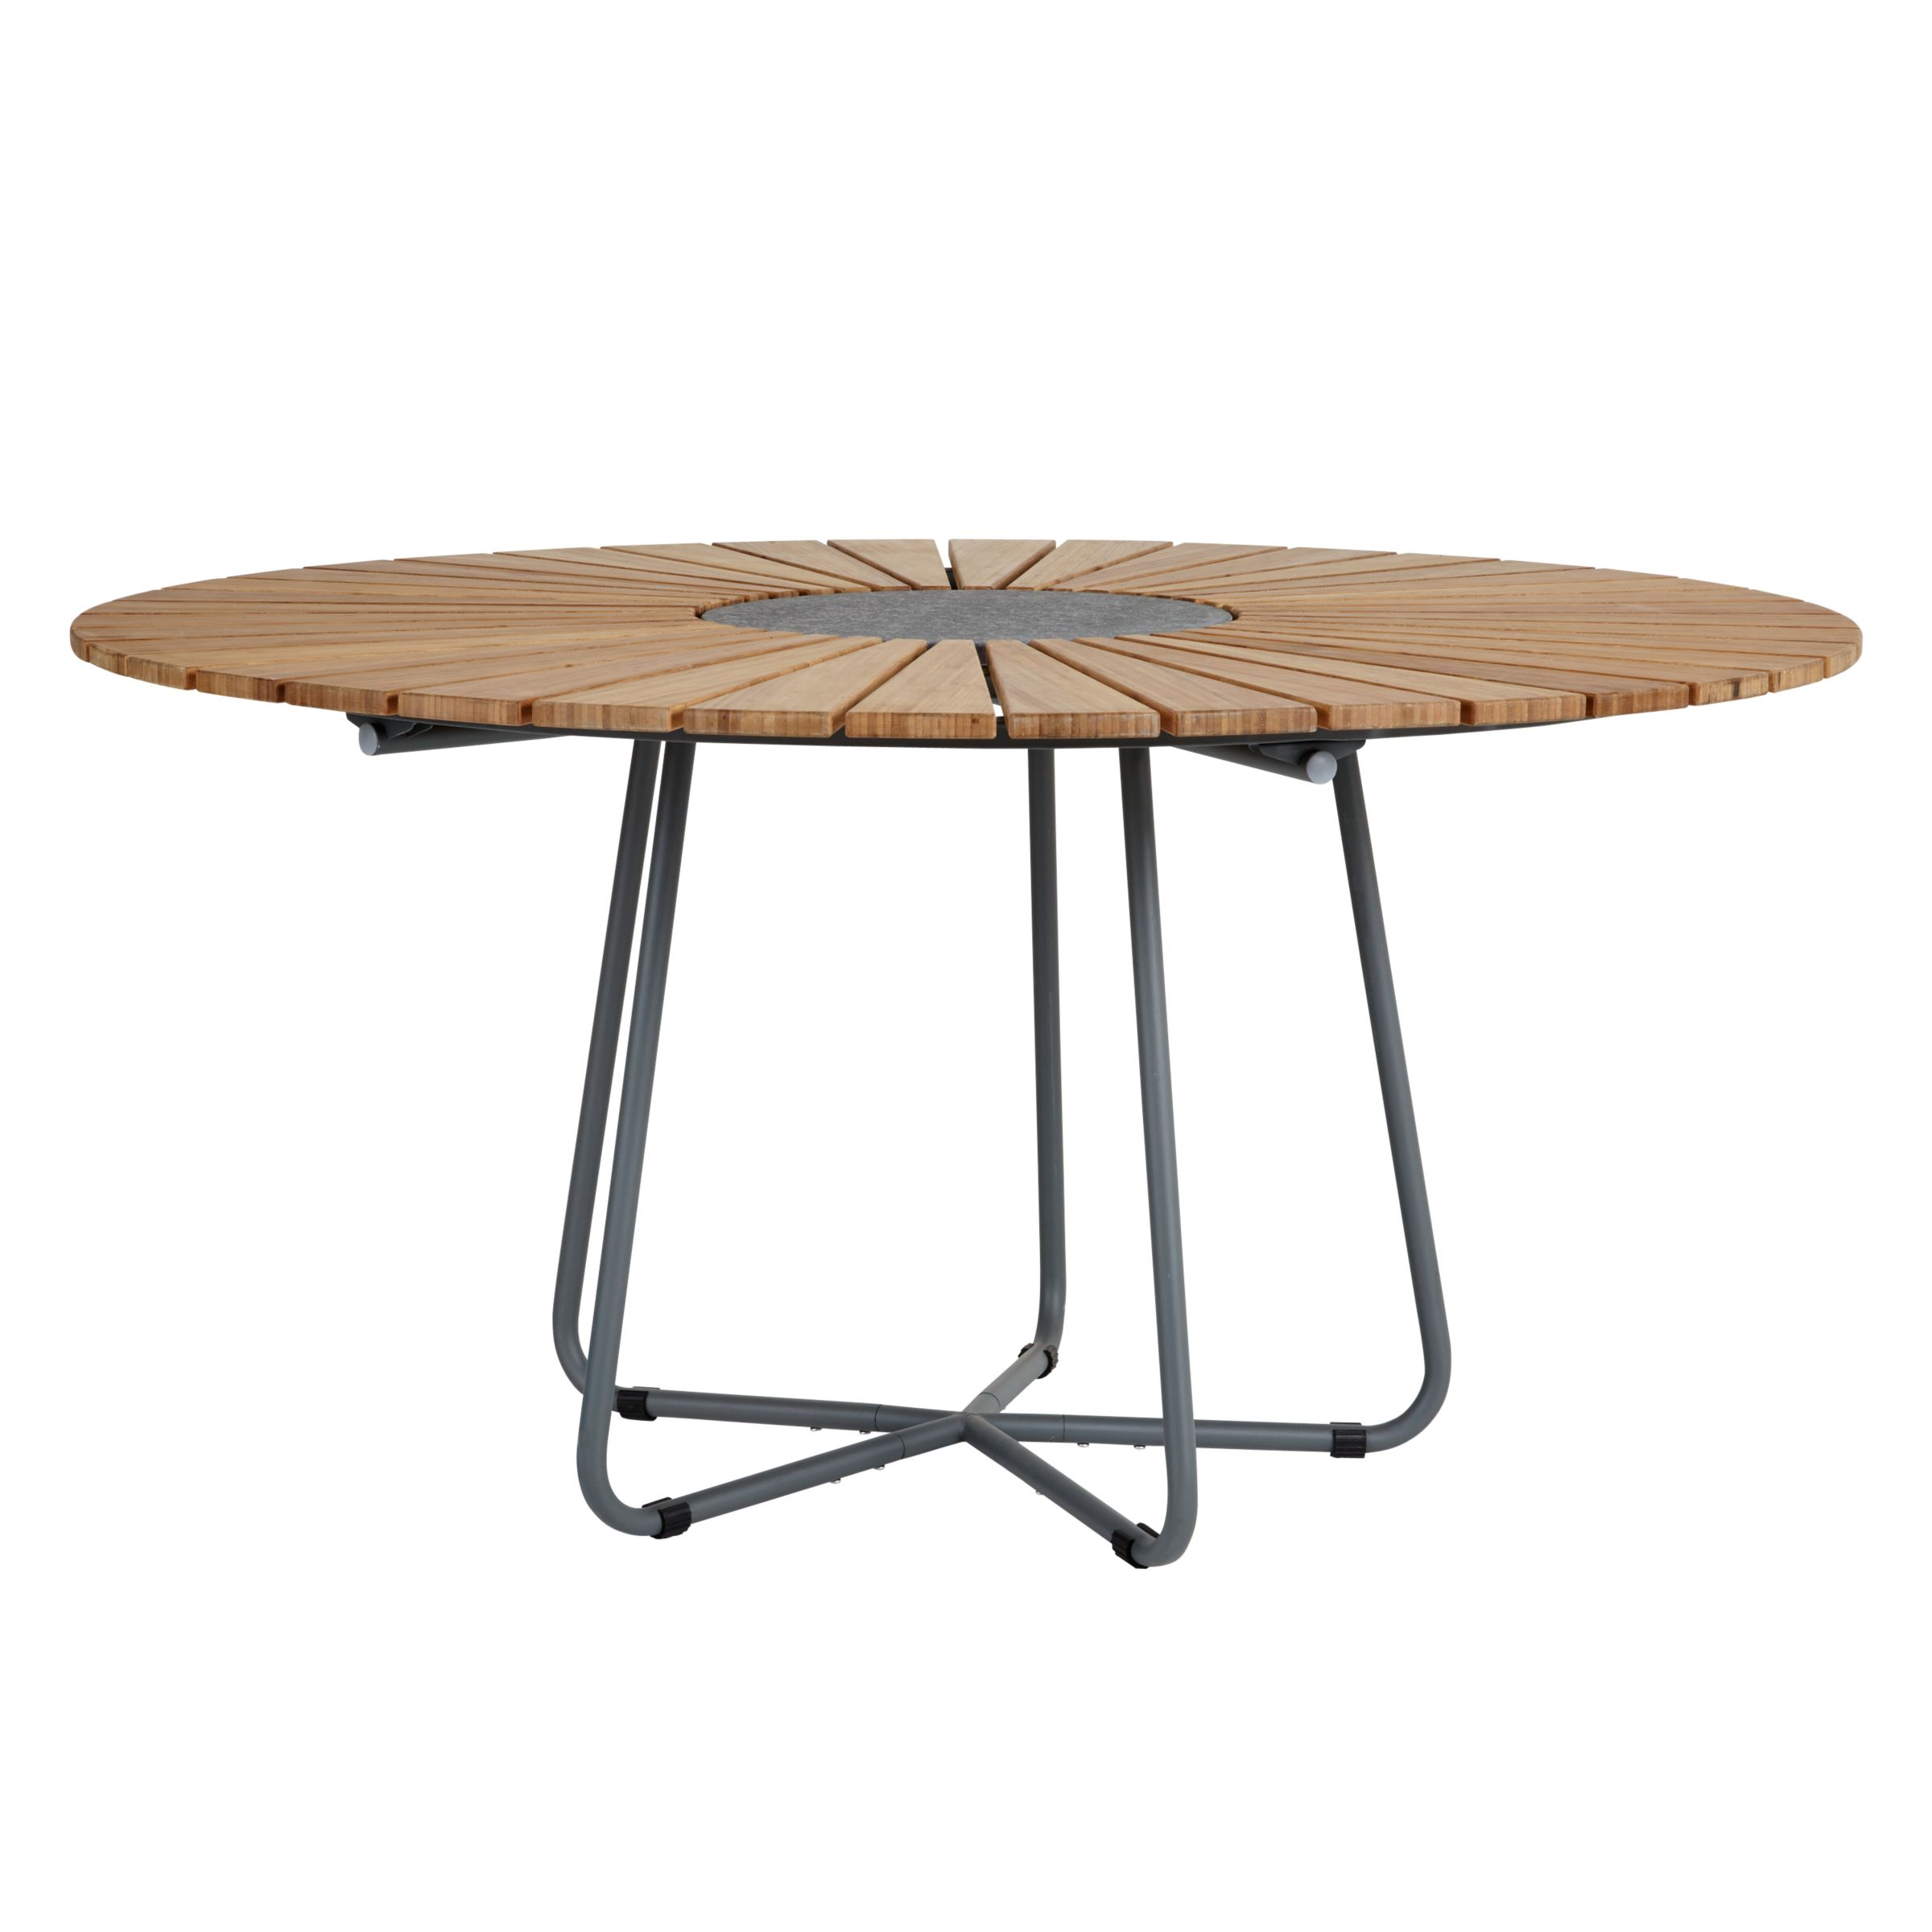 John Lewis Cannes Dining Table, 150cm